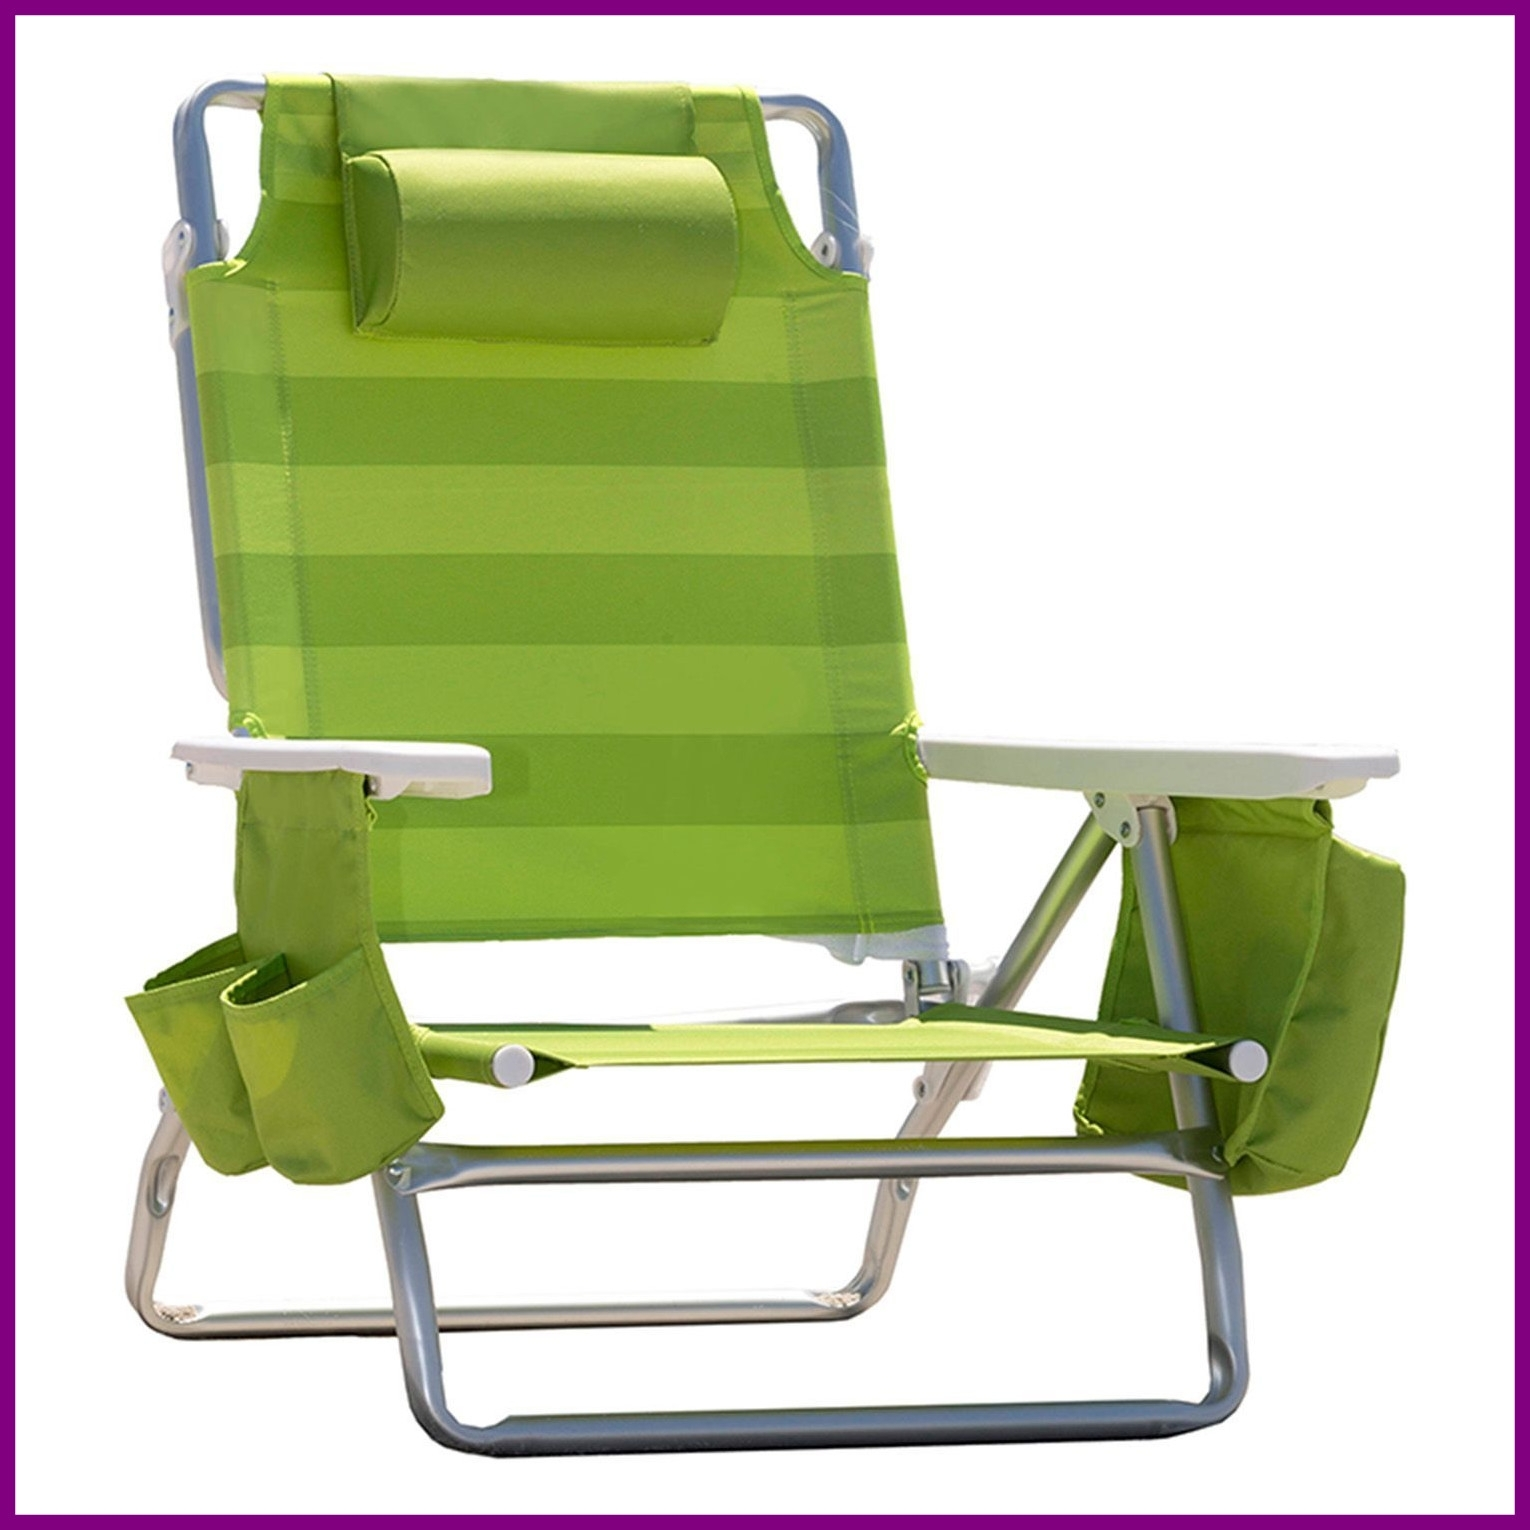 Awesome Beach Chair Lime Sam U Club Camping Image For Site Com With Rocking Chairs At Sams Club (#1 of 15)